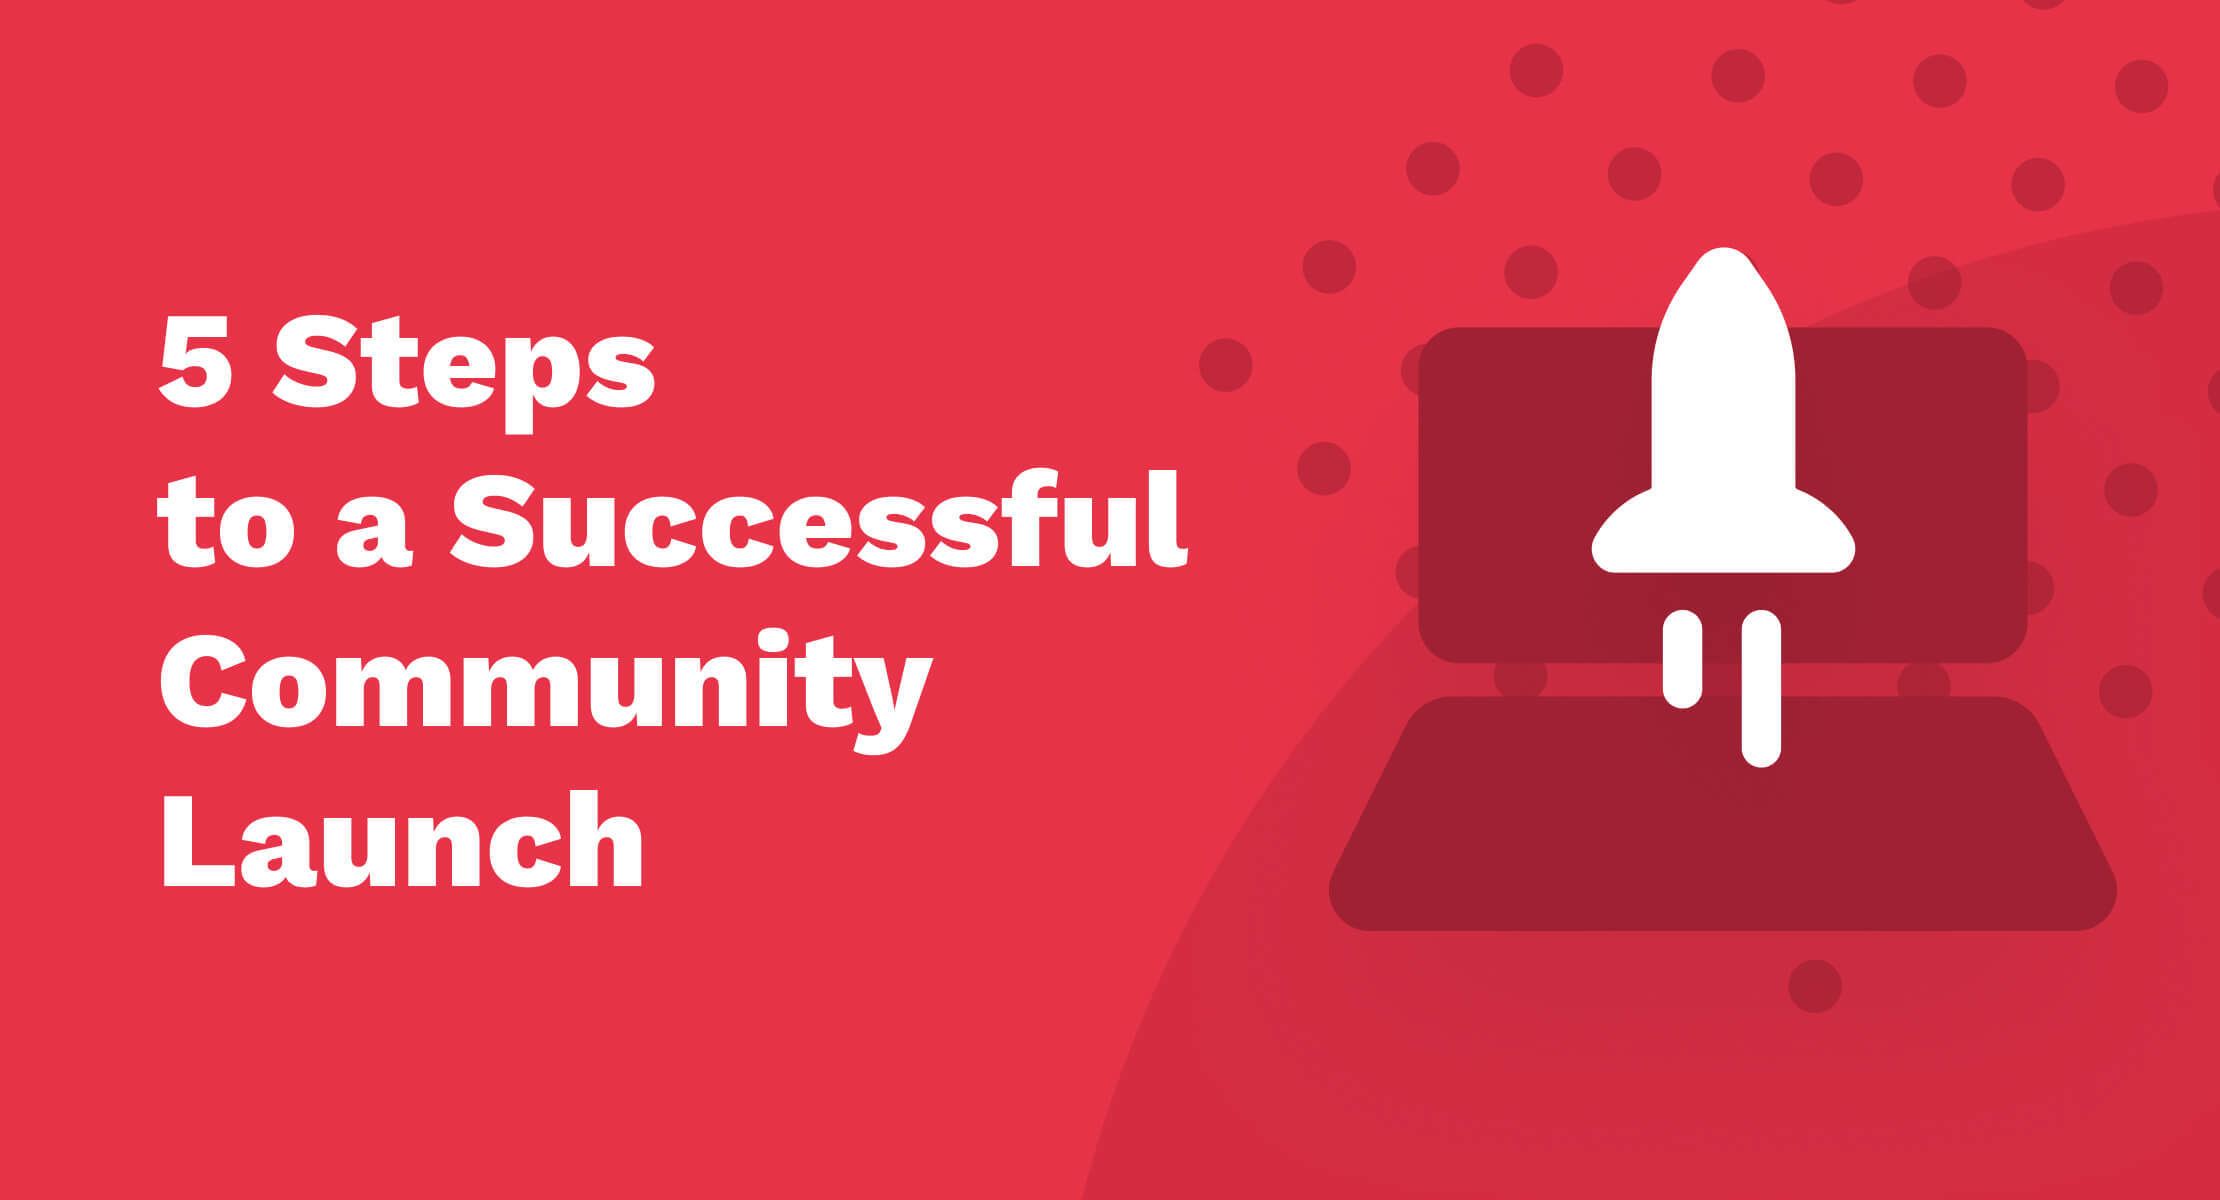 5 Steps To a Successful Community Launch